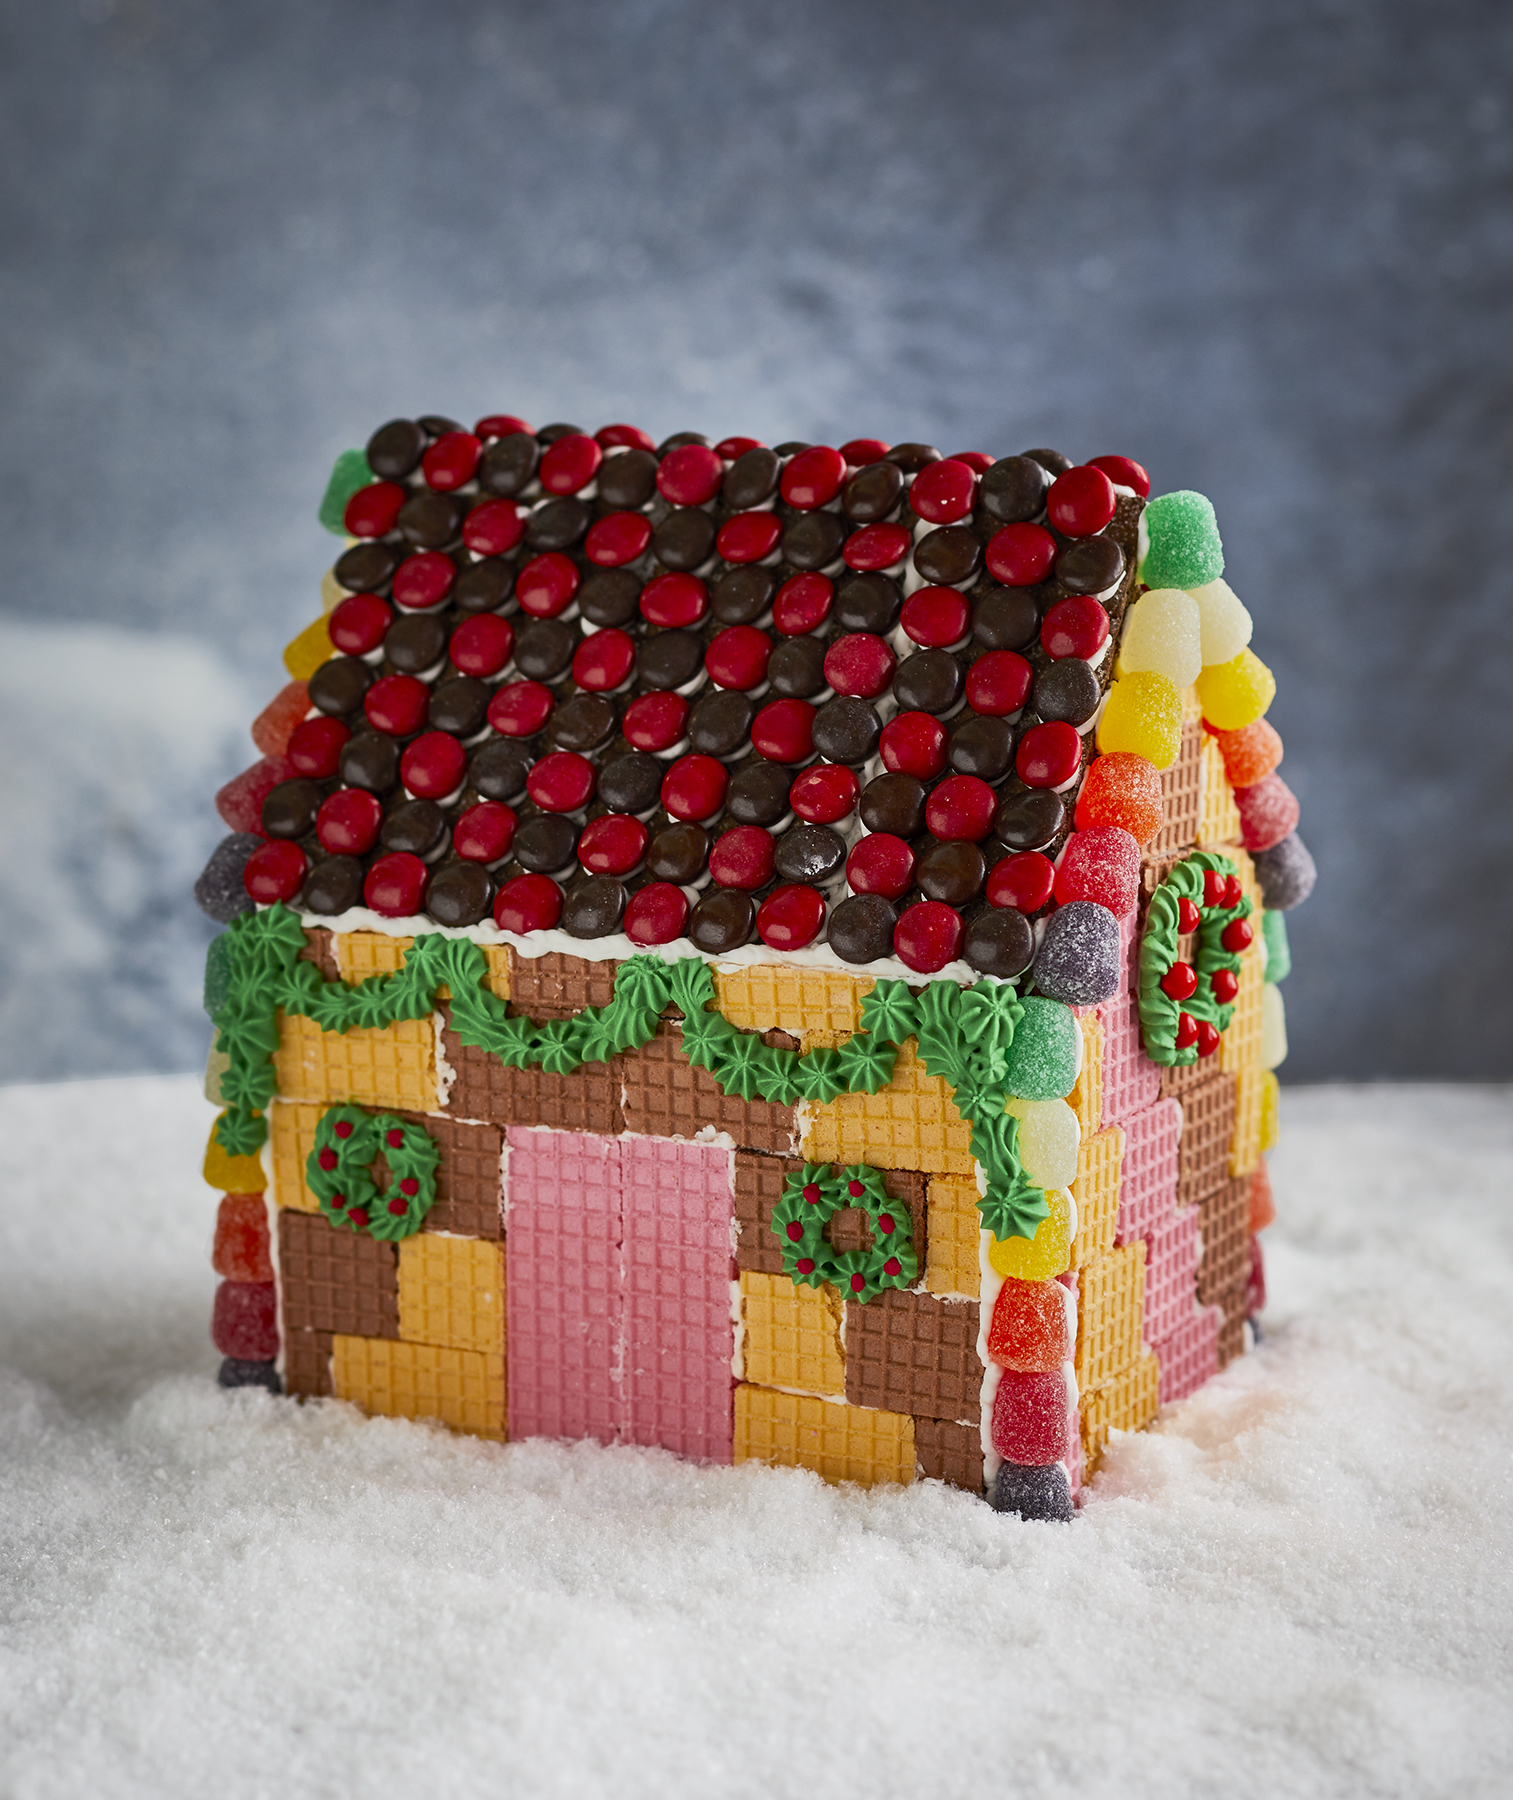 Wafer Cookie Gingerbread House